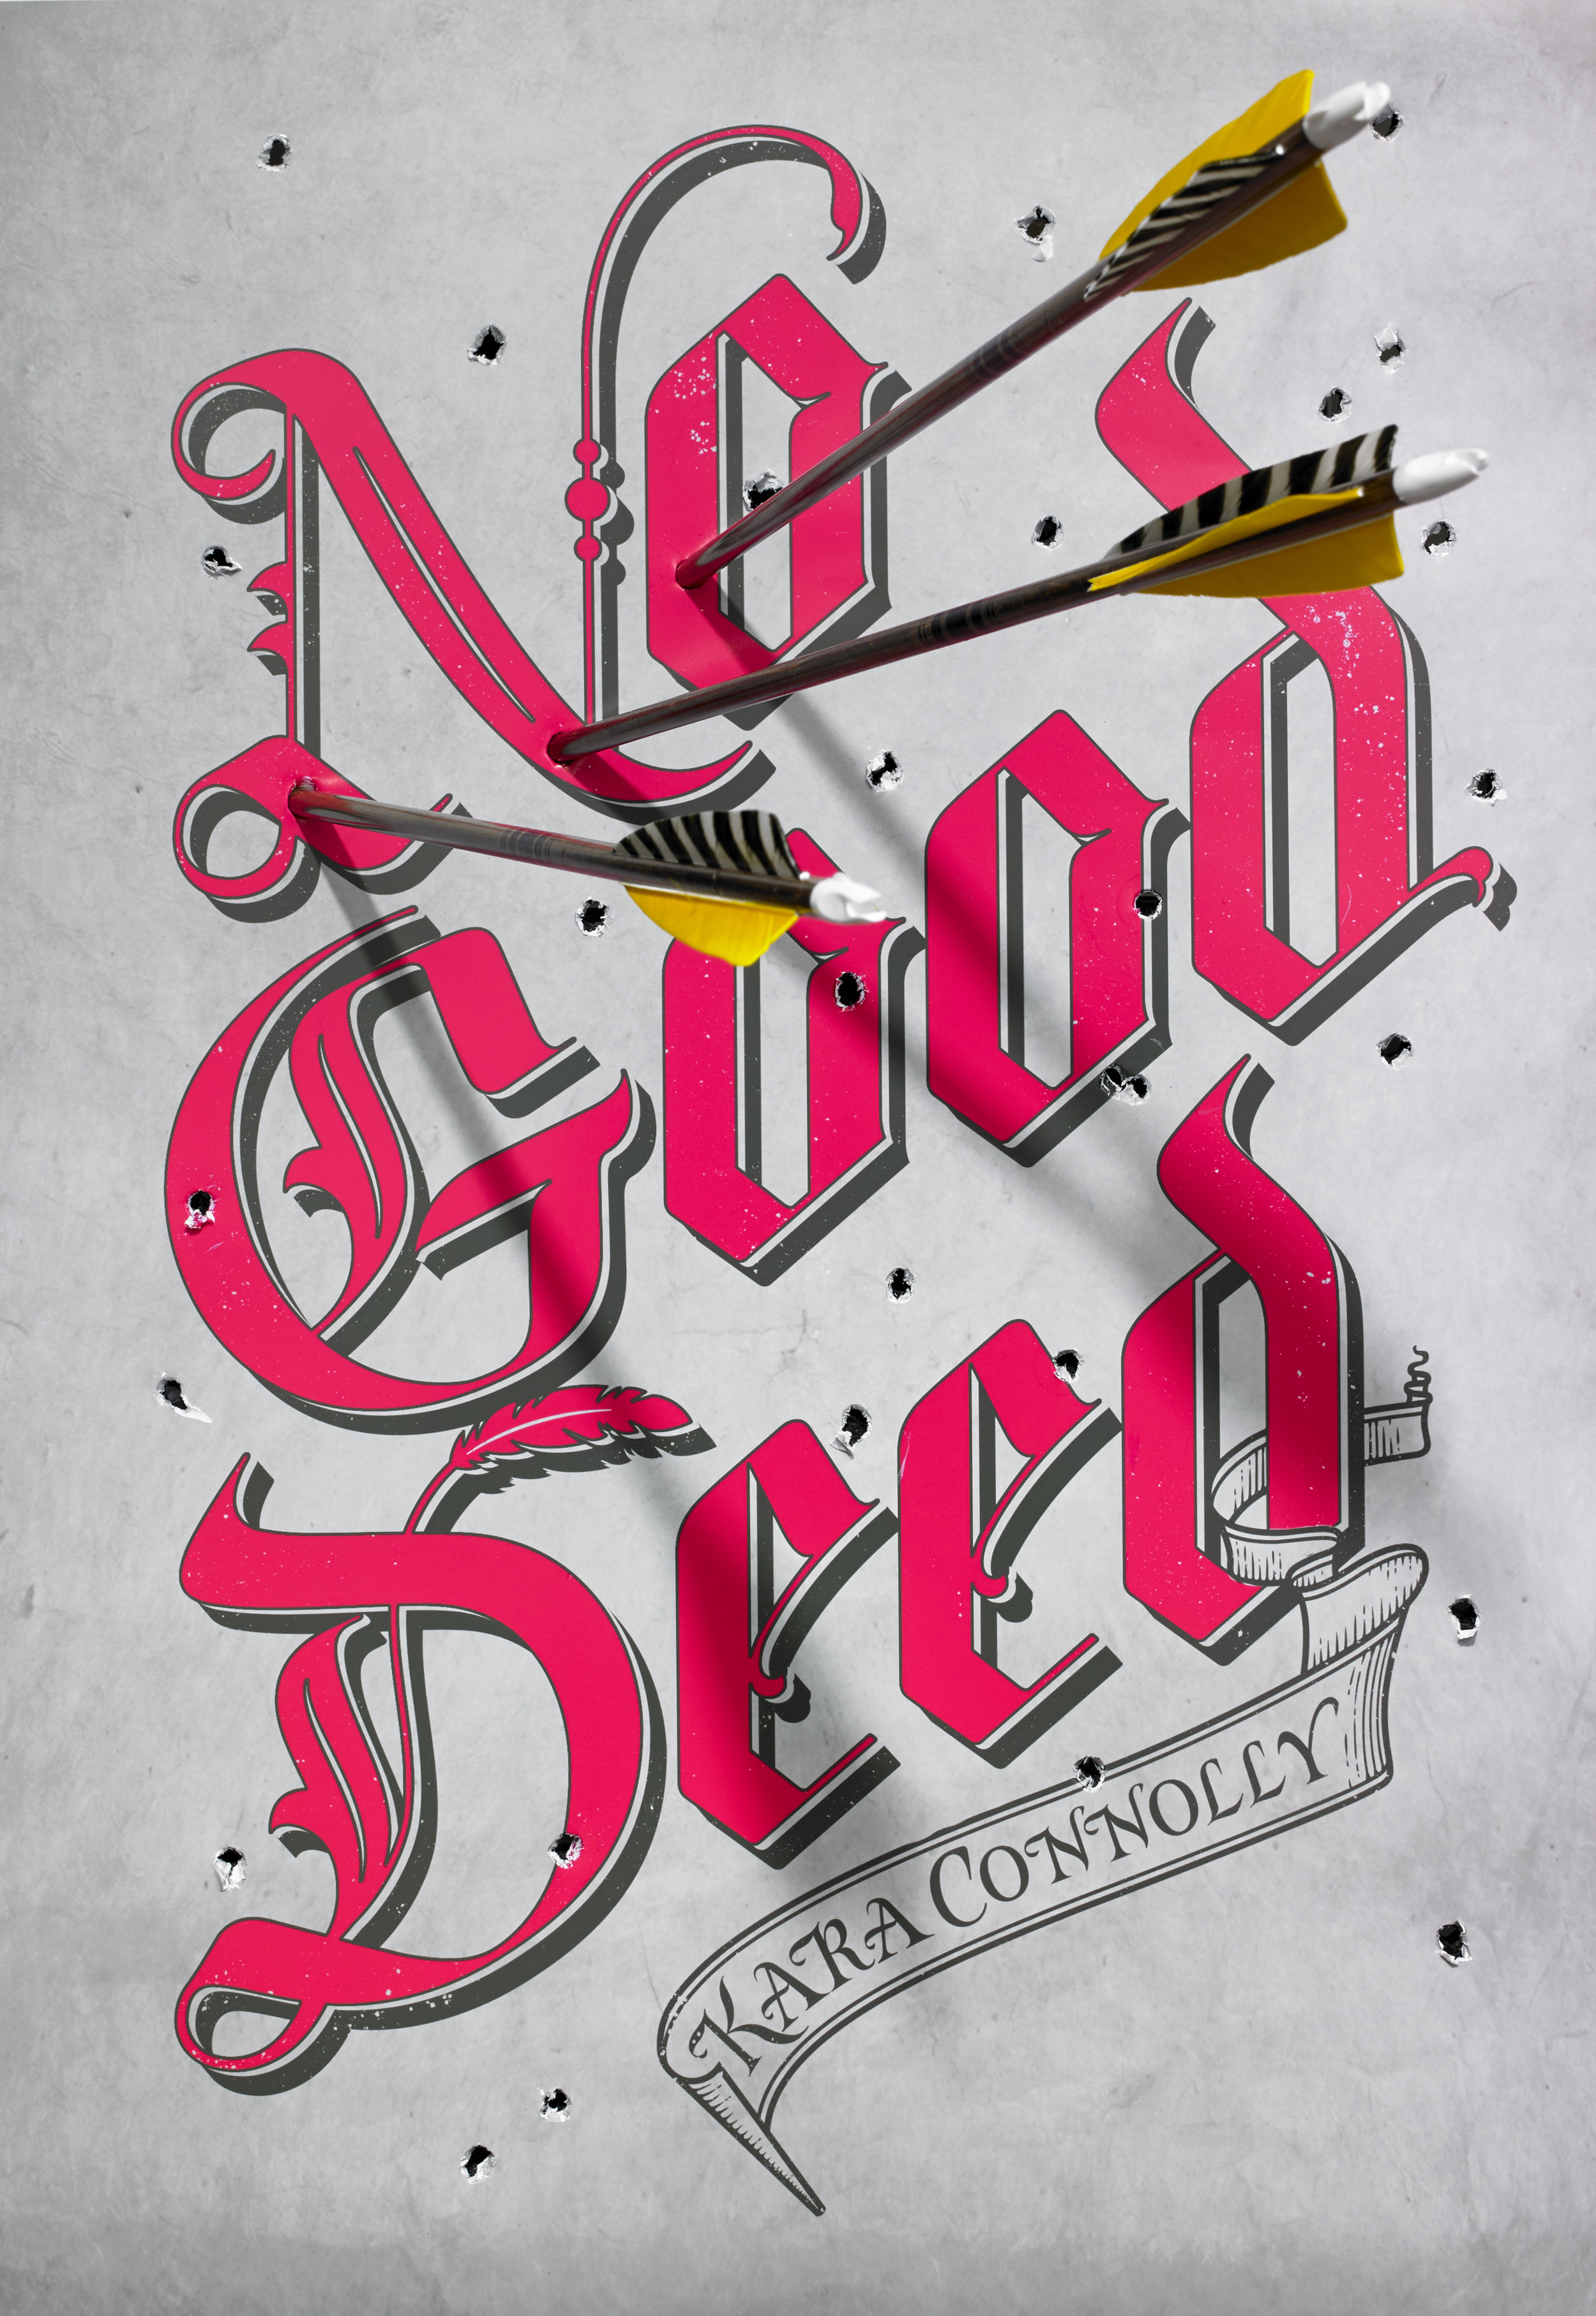 Killed comp / Alternate cover. This was one of my favorite processes. I printed out an epson of the hand-lettered cover—with just the type—and then we photographed real arrows piercing through it.   Photography by Christine Blackburne.  Hand-lettering by GingerMonkey.